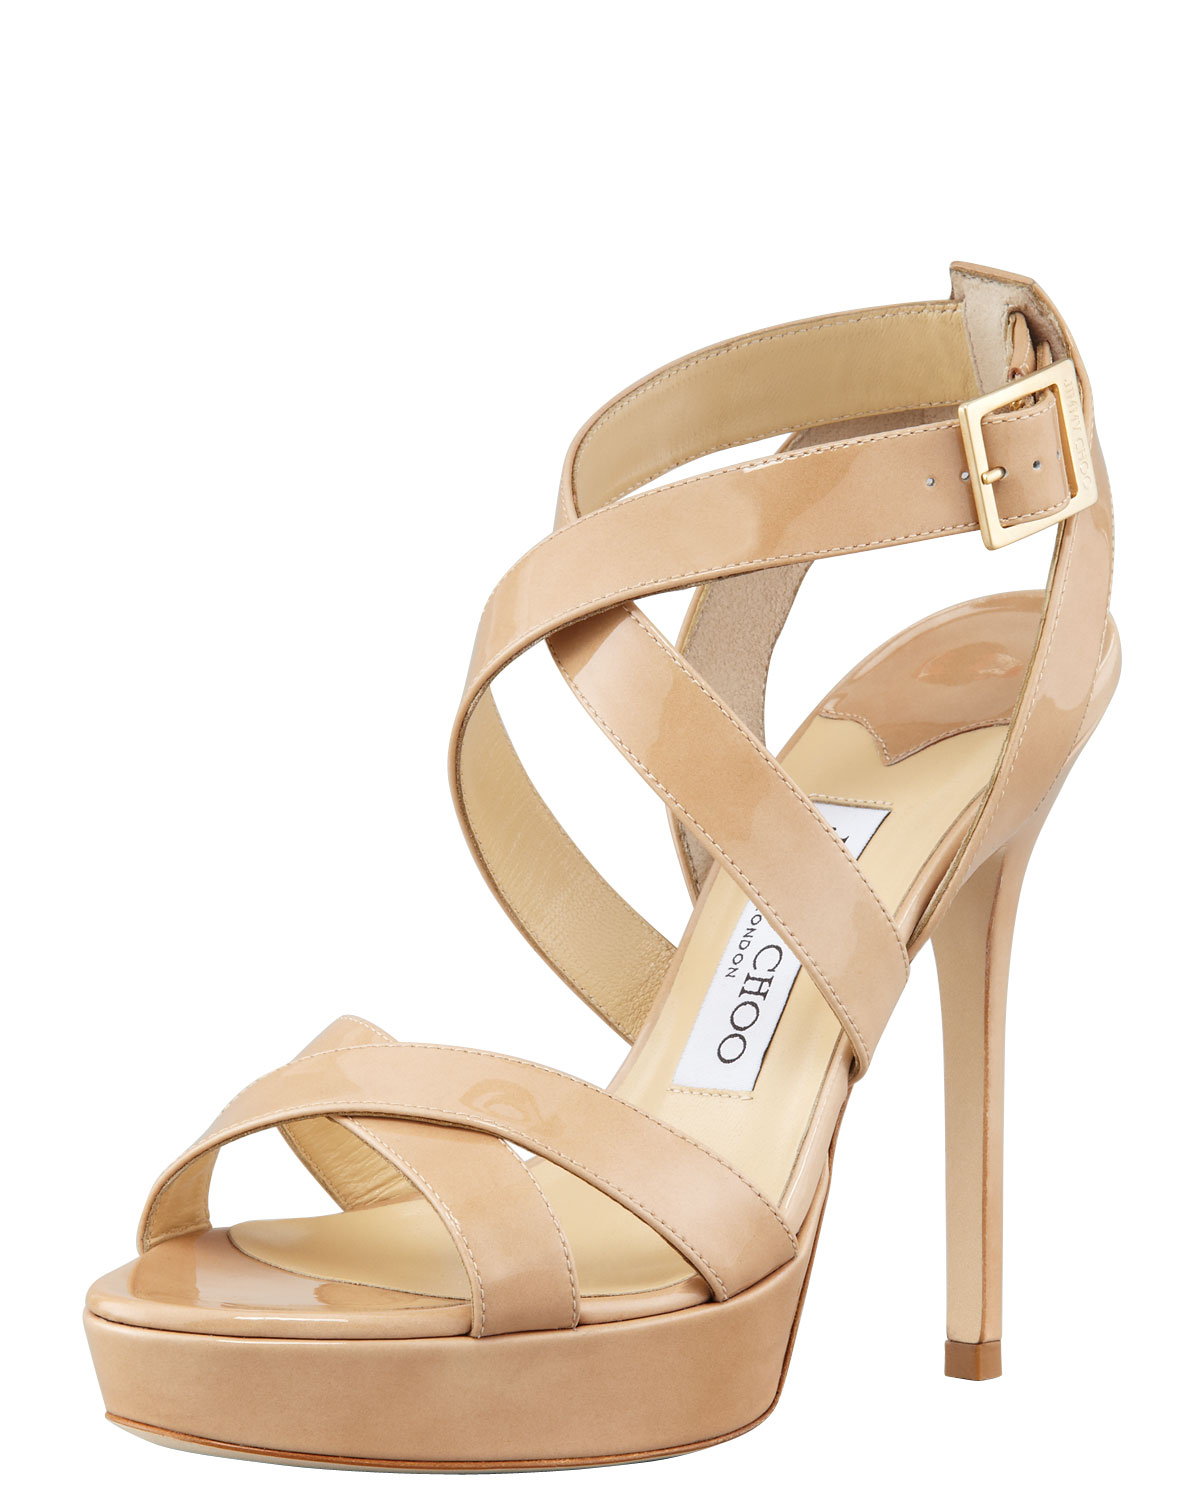 b25e8f9a3460 Gallery. Previously sold at  Bergdorf Goodman · Women s Wedge Heels Women s Jimmy  Choo ...